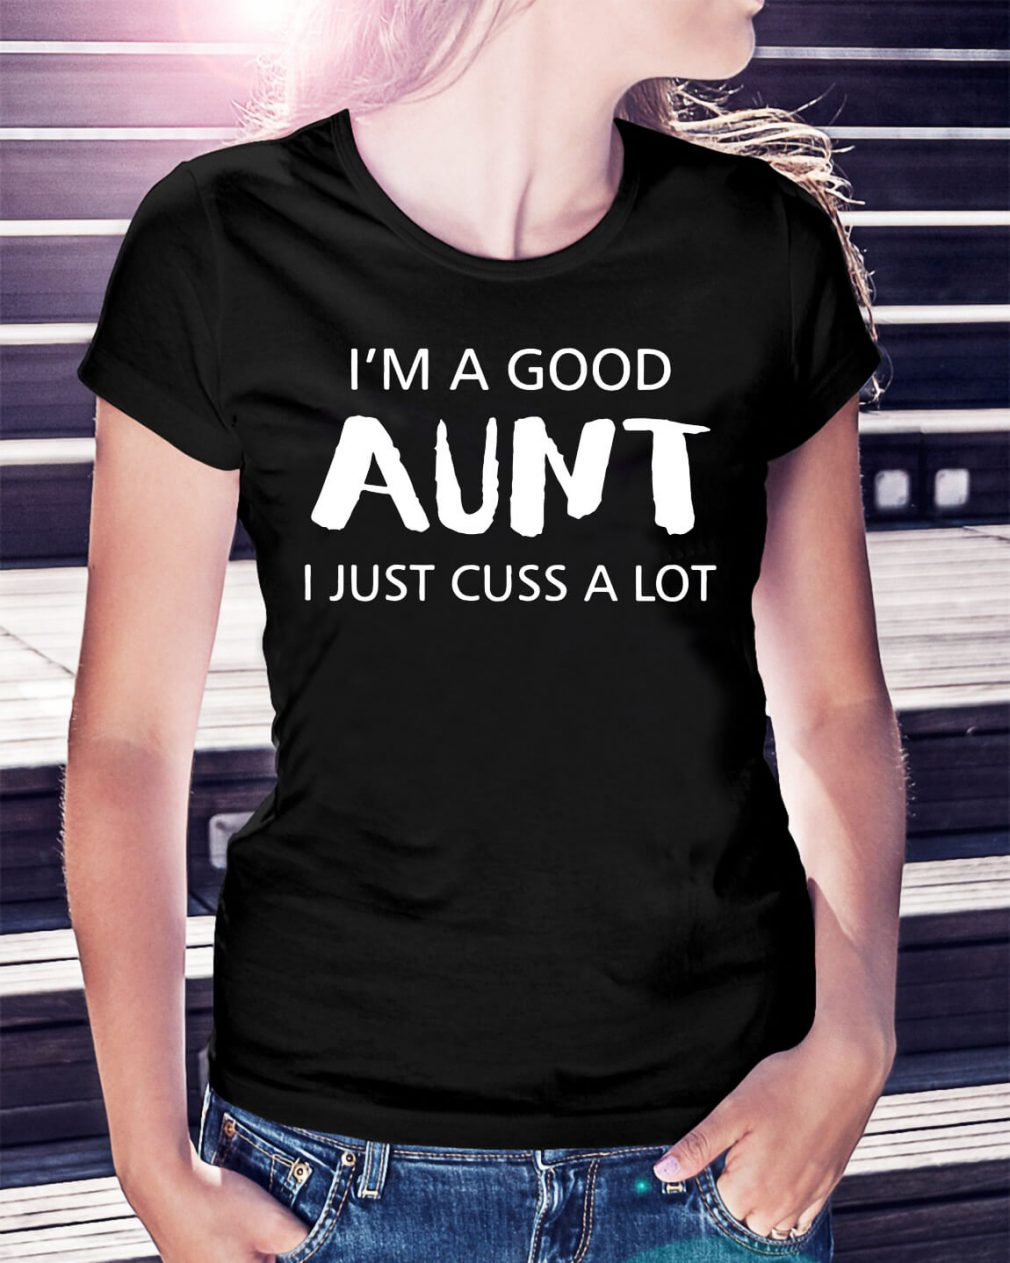 I'm a good aunt I just cuss a lot shirt